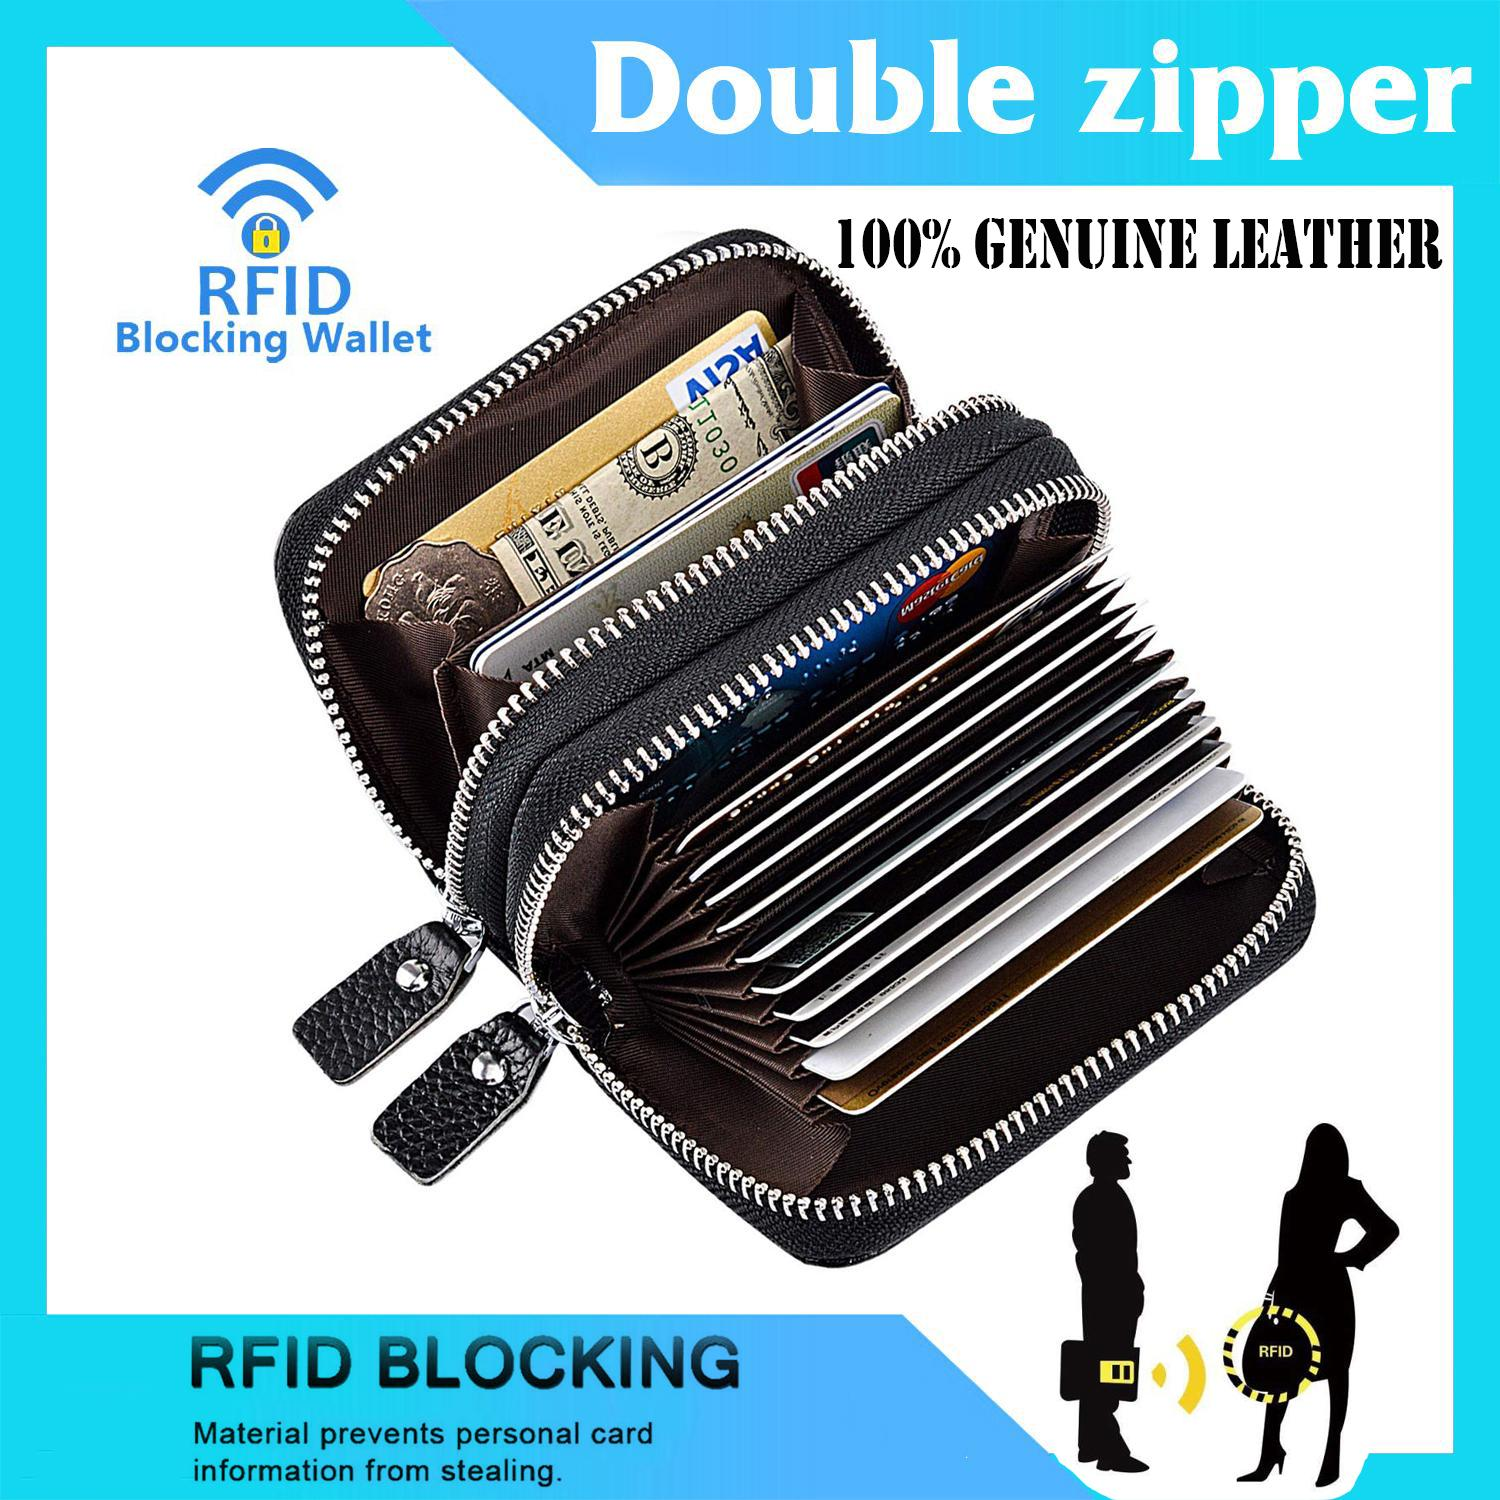 EsoGoal กระเป๋าใส่บัตรเครดิต กระเป๋าหนังแท้RFID Blocking Credit Card Holder, Genuine Leather Credit Card Wallet with Double Zipper Small Pocket Wallet Spacious Accordion Wallets